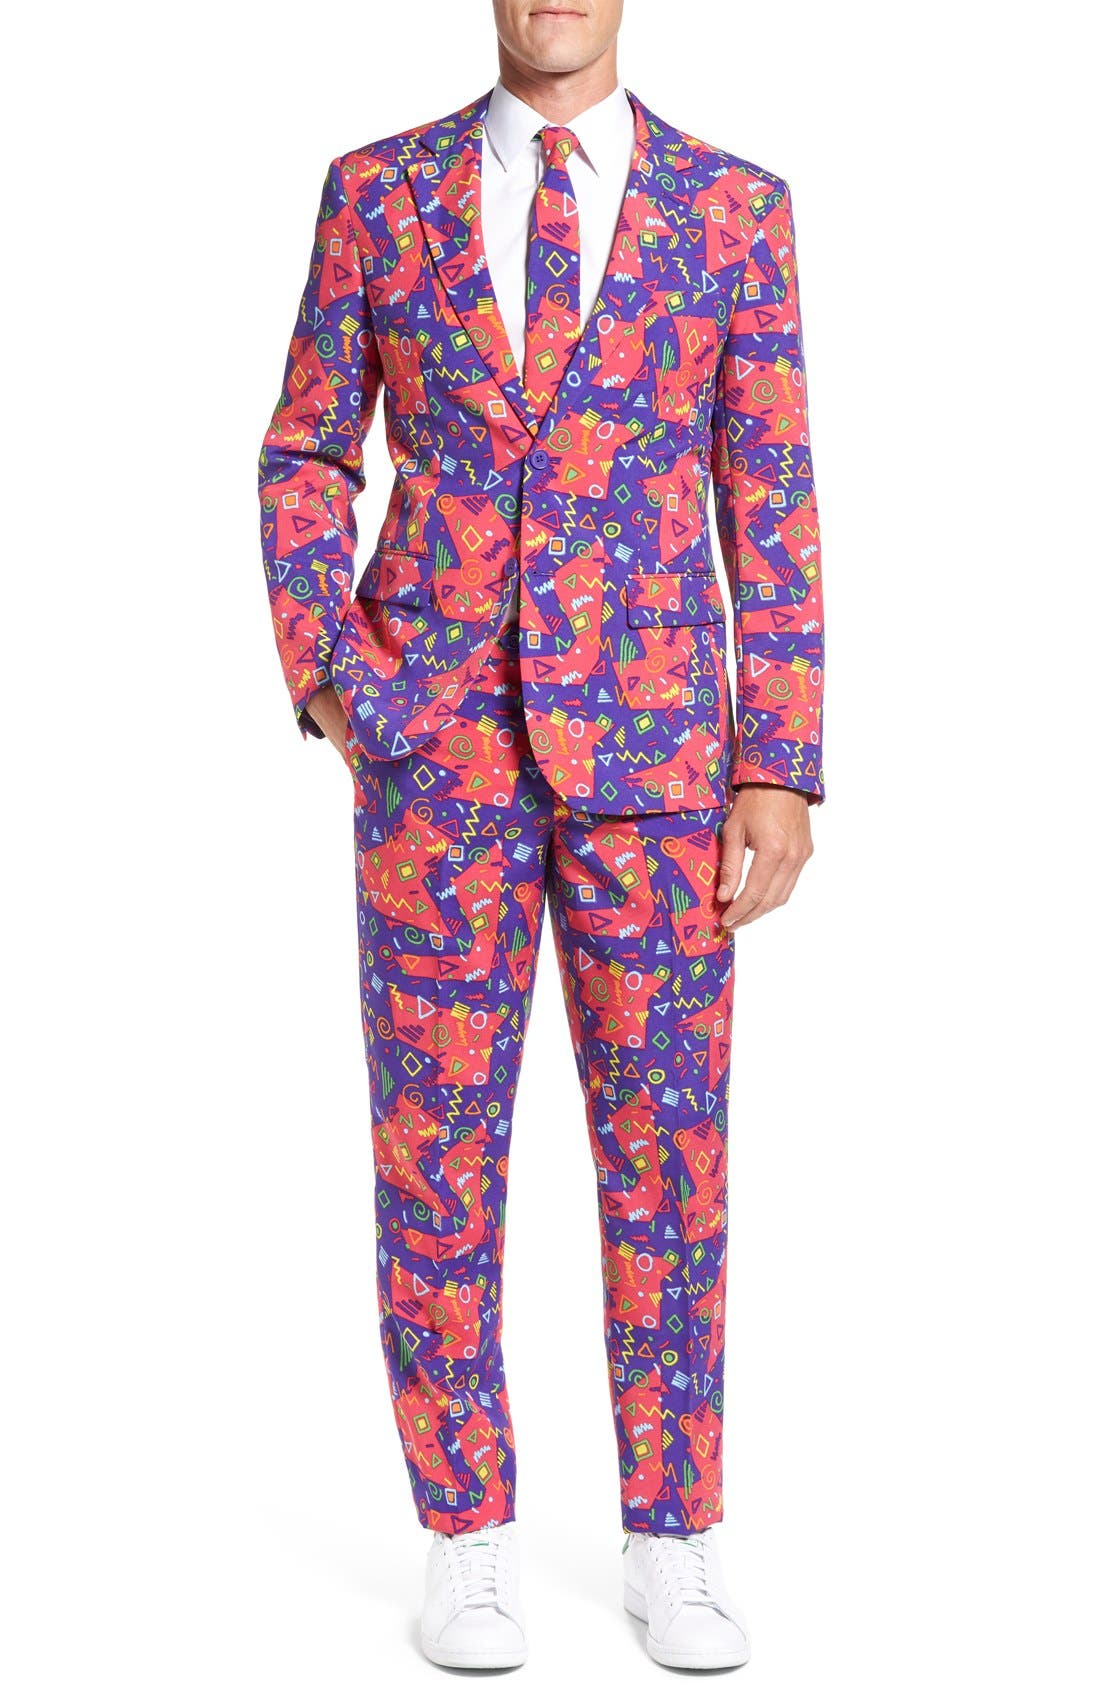 'The Fresh Prince' Trim Fit Two-Piece Suit with Tie,                             Main thumbnail 1, color,